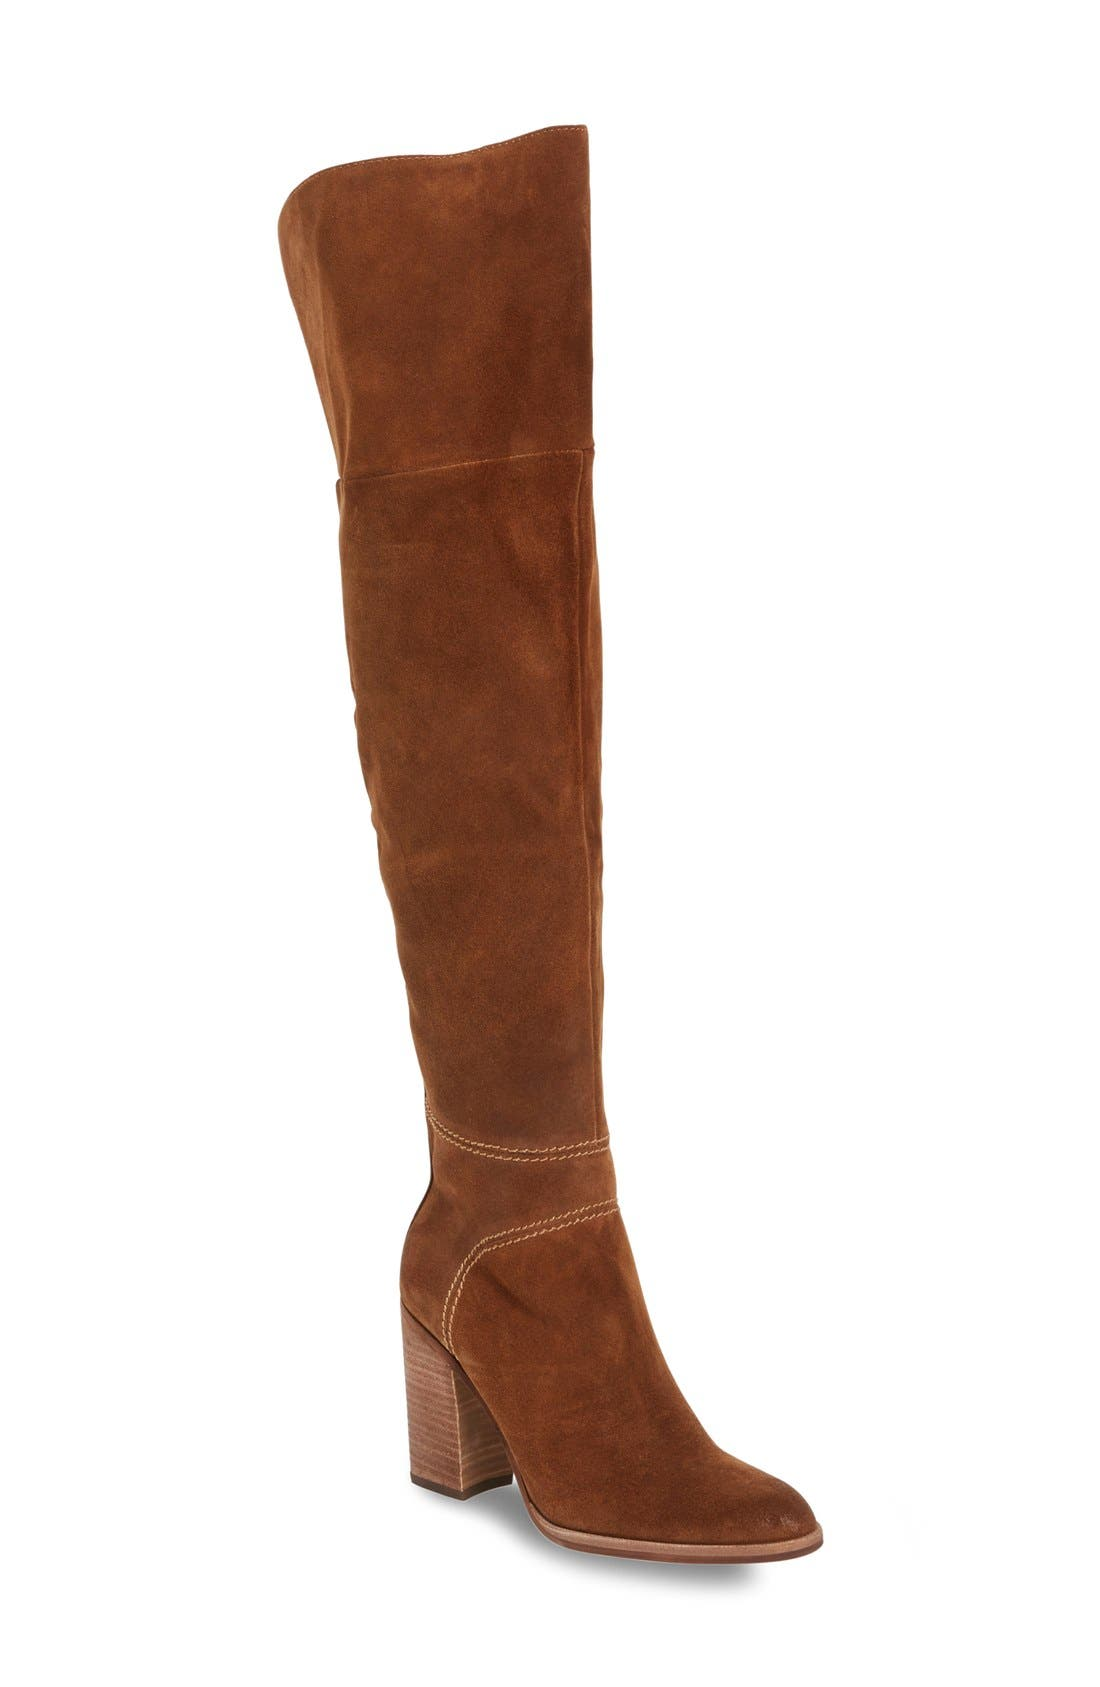 Alternate Image 1 Selected - Dolce Vita 'Cash' Over the Knee Boot (Women)